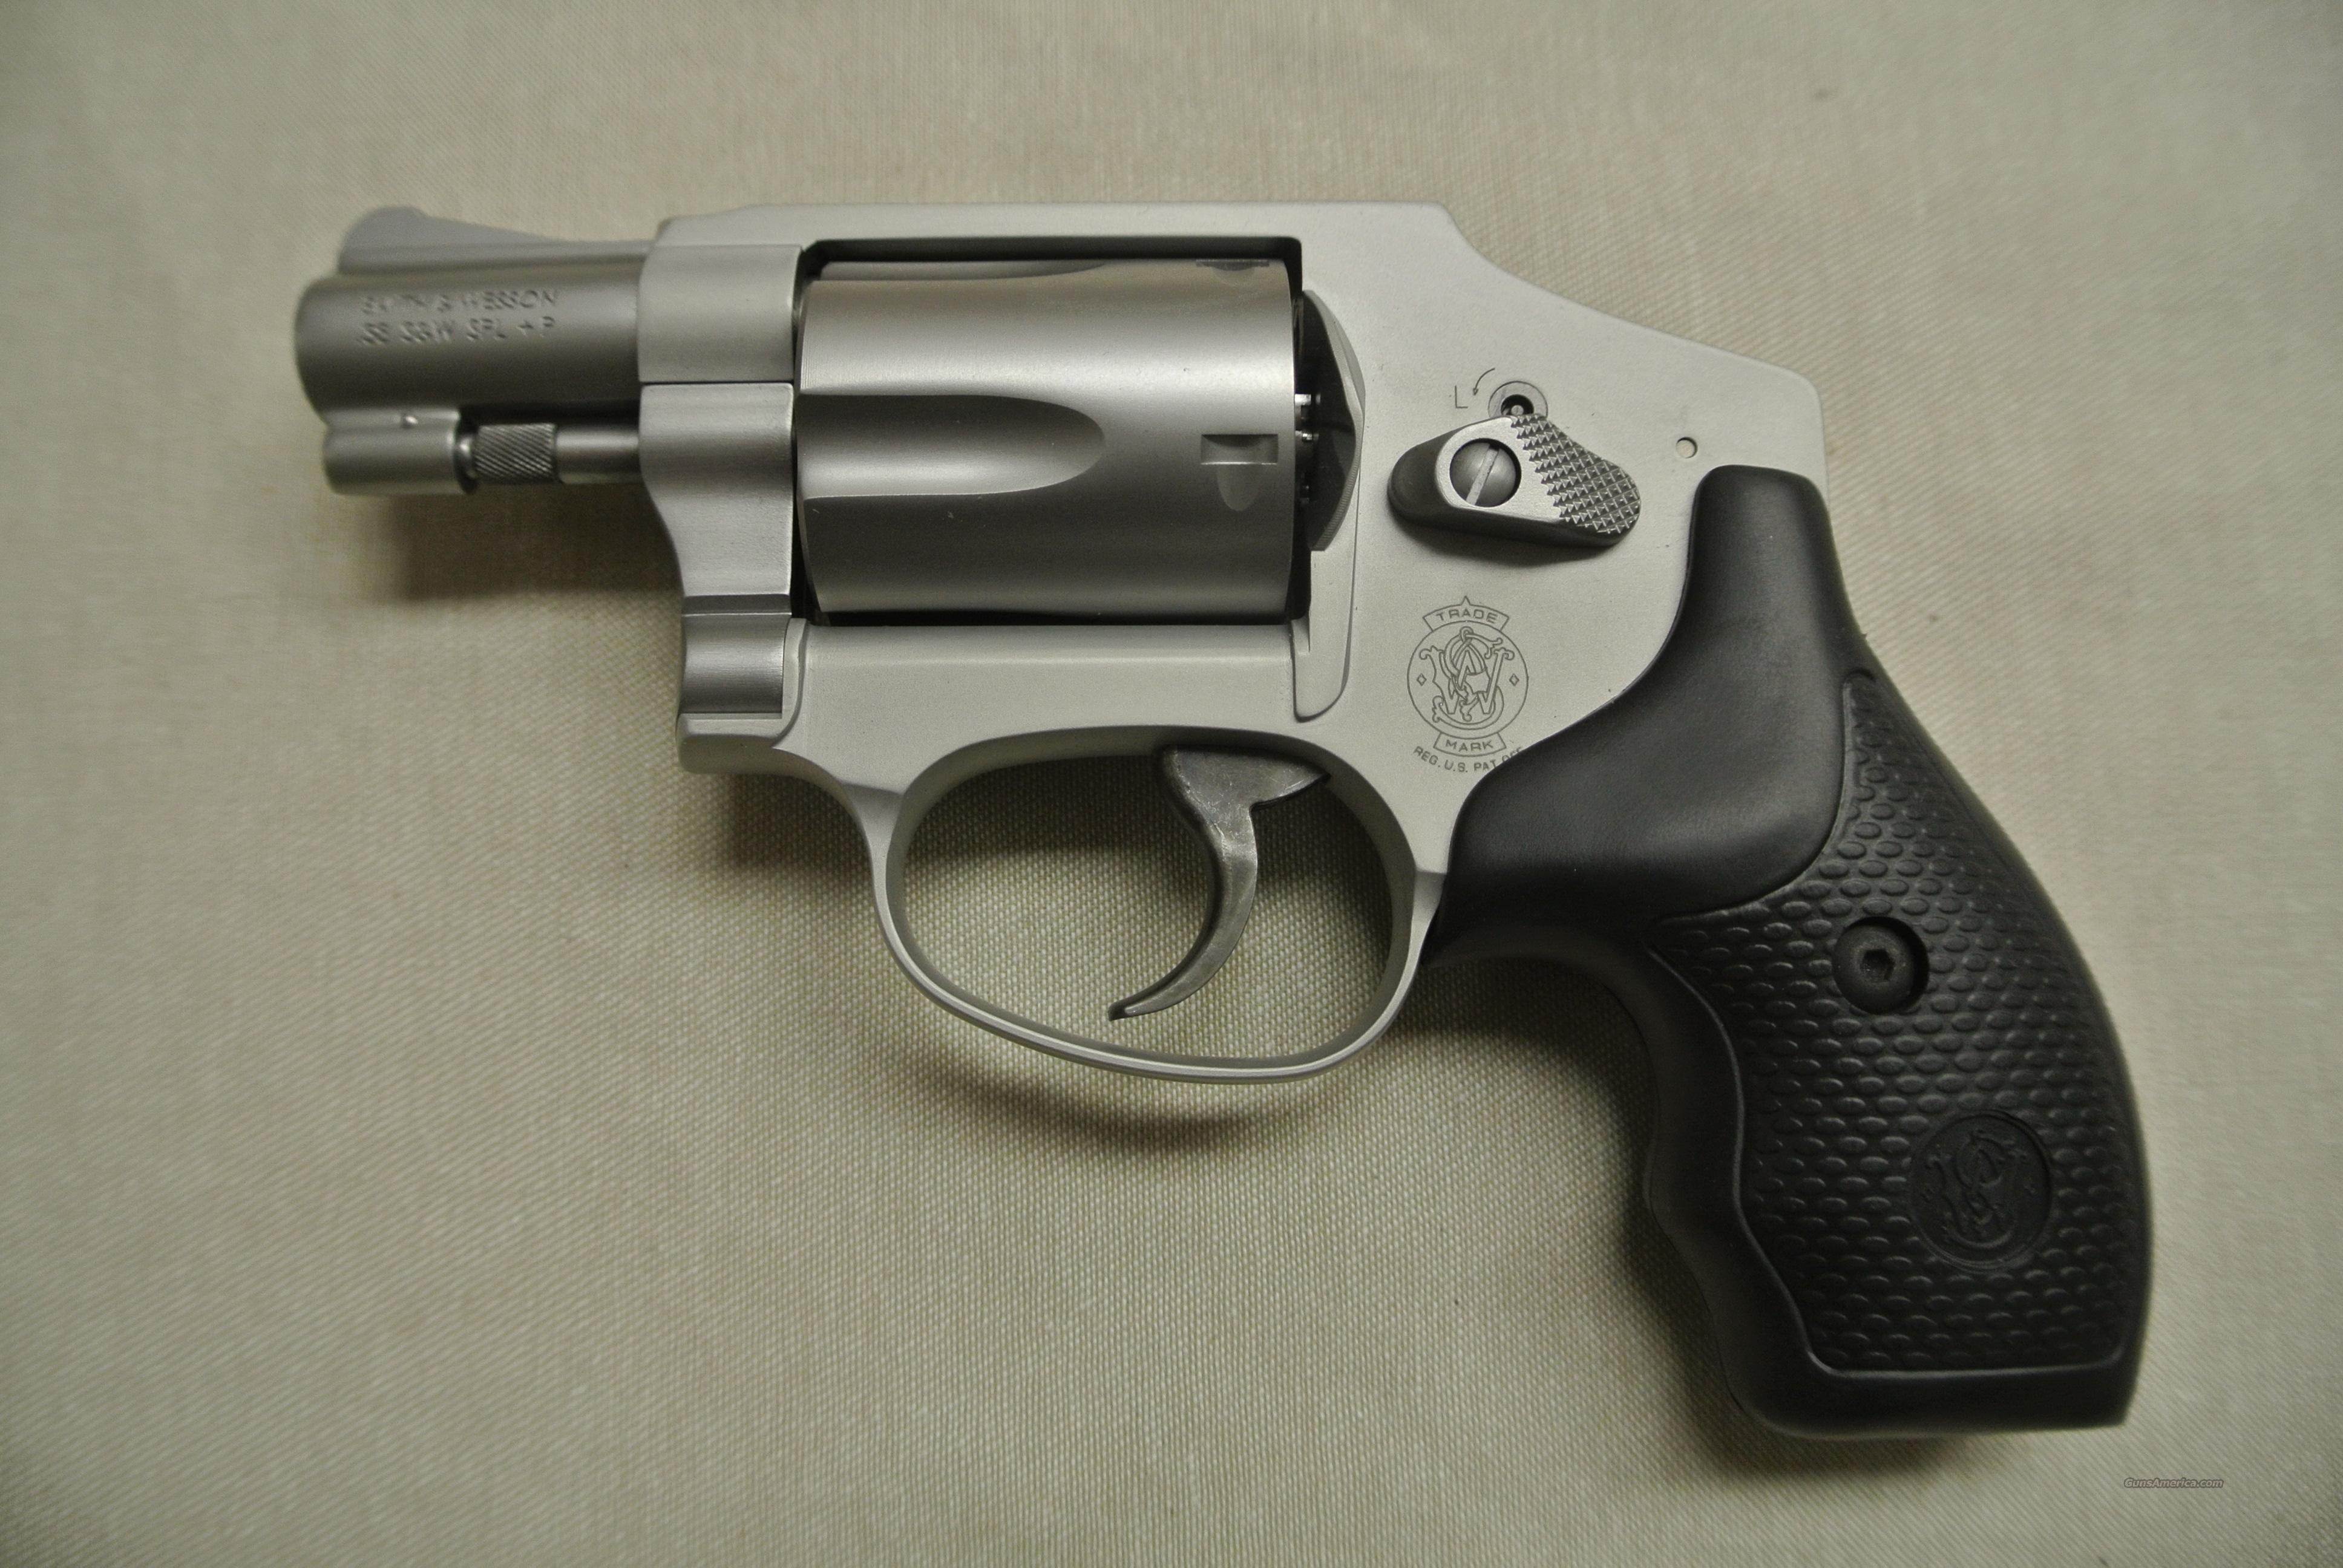 Smith & Wesson 642 .38 Special Airweight Revolv... for sale